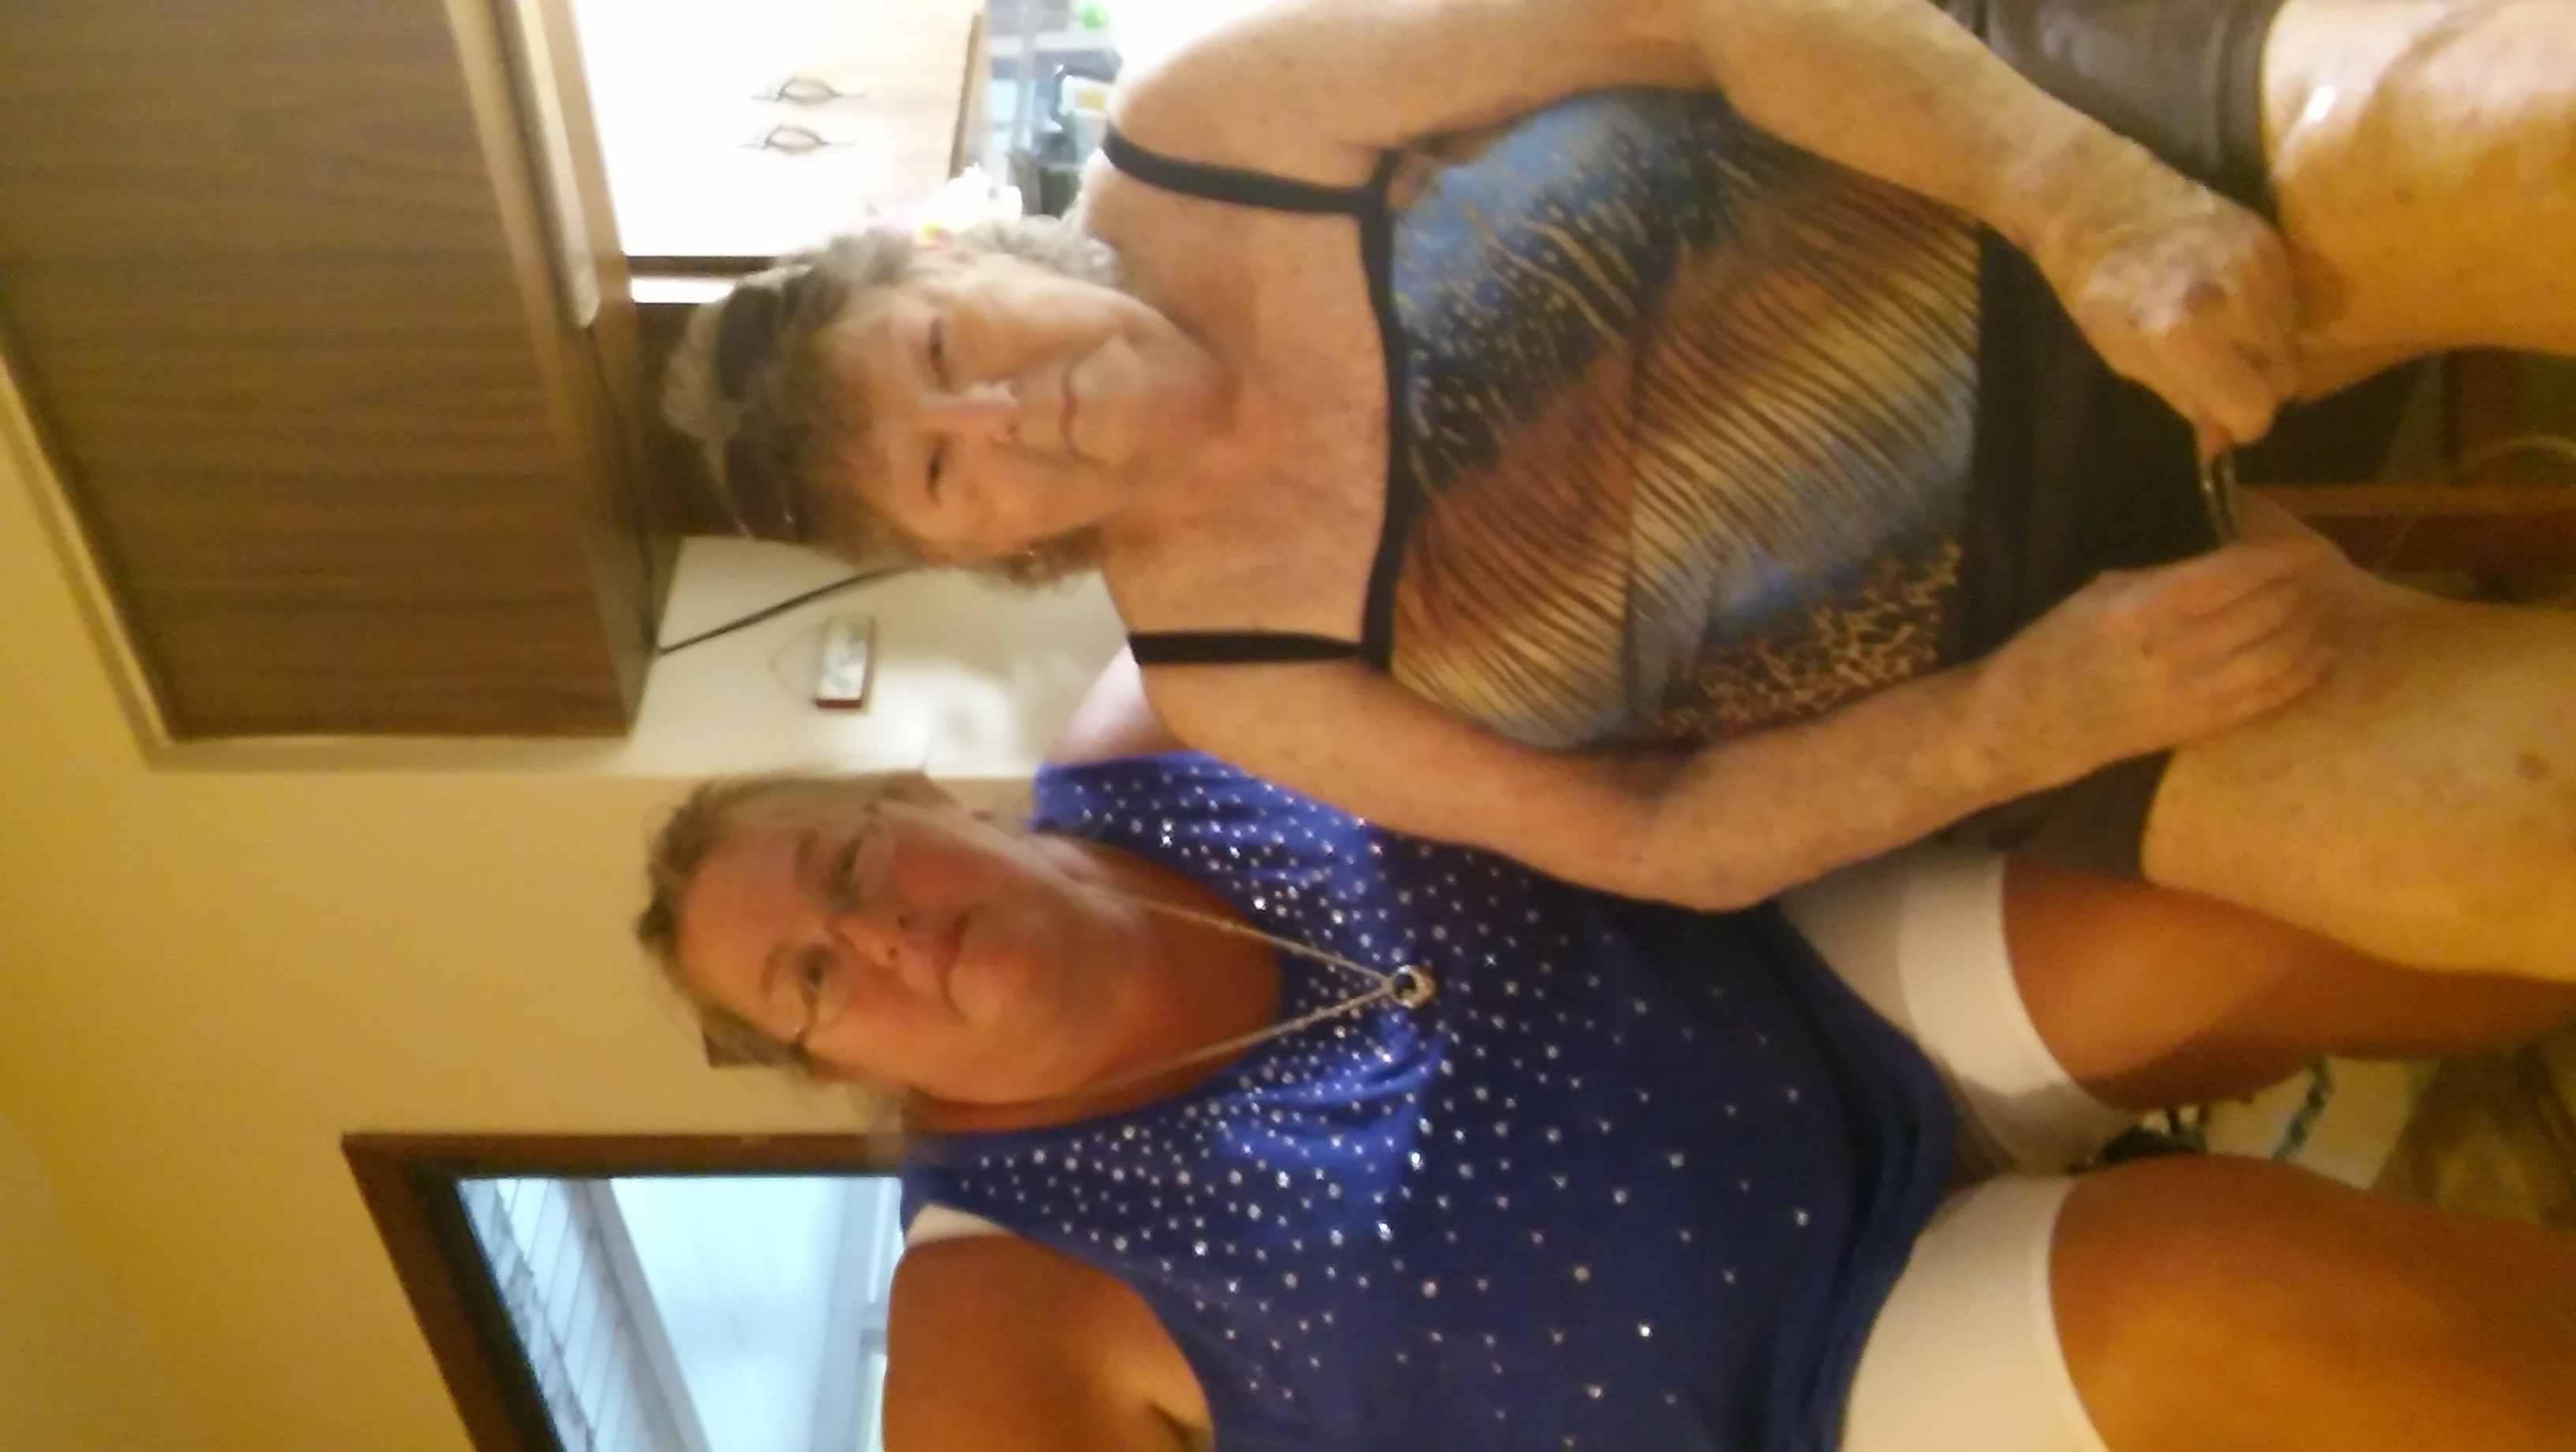 Me and mom back in may